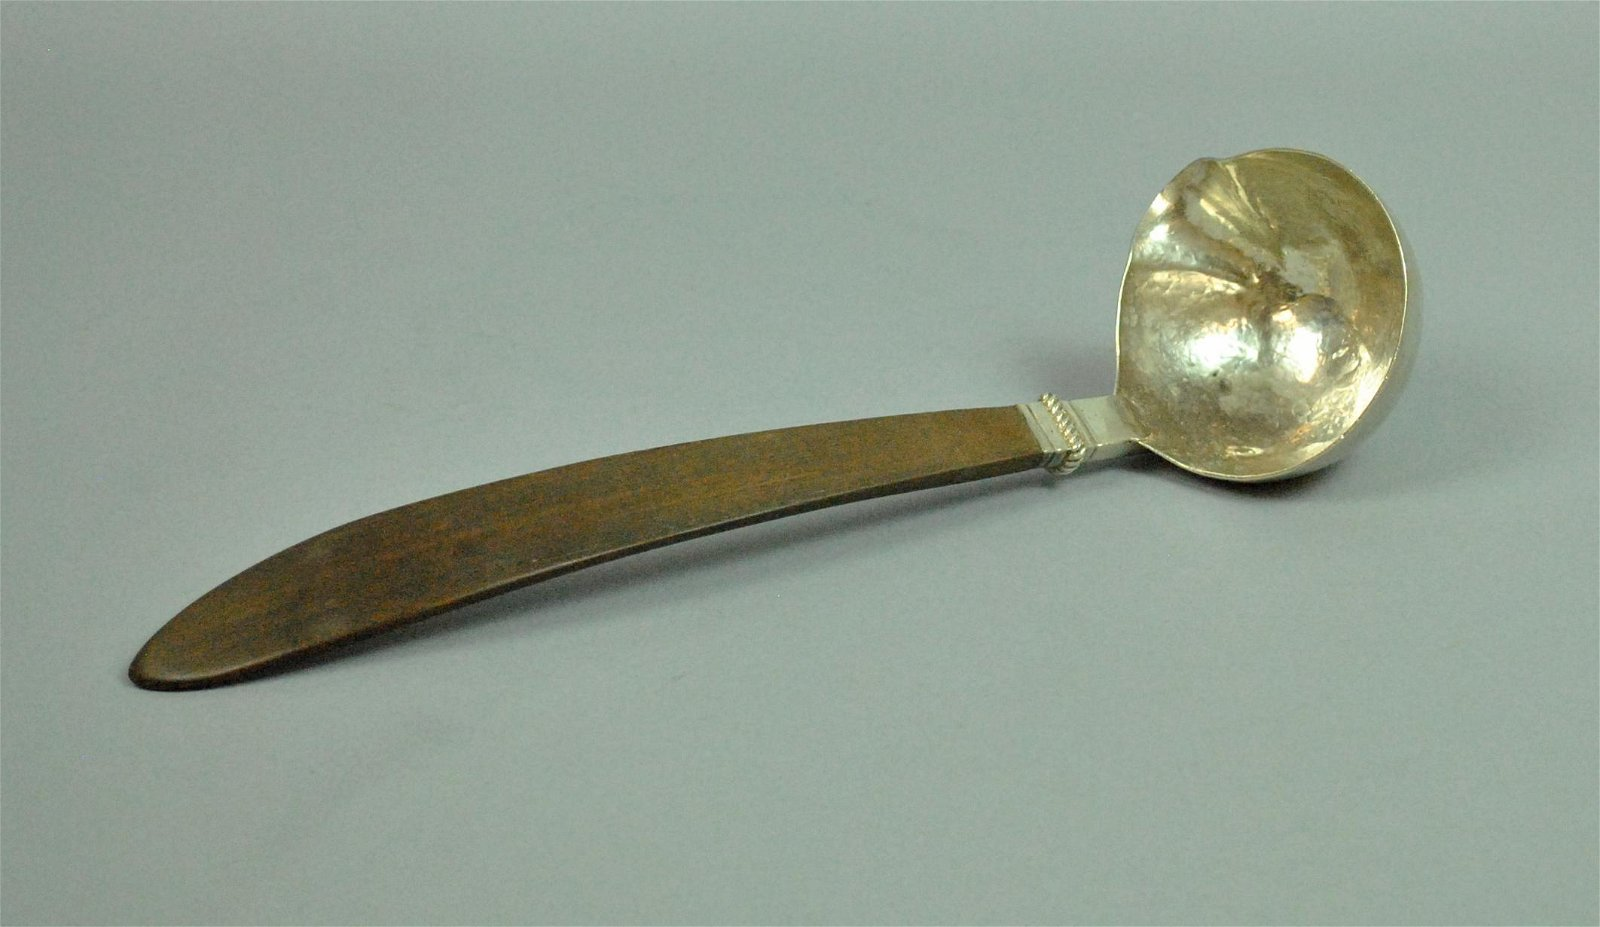 WILLIAM SPRATLING MEXICAN SILVER & ROSEWOOD LADLE